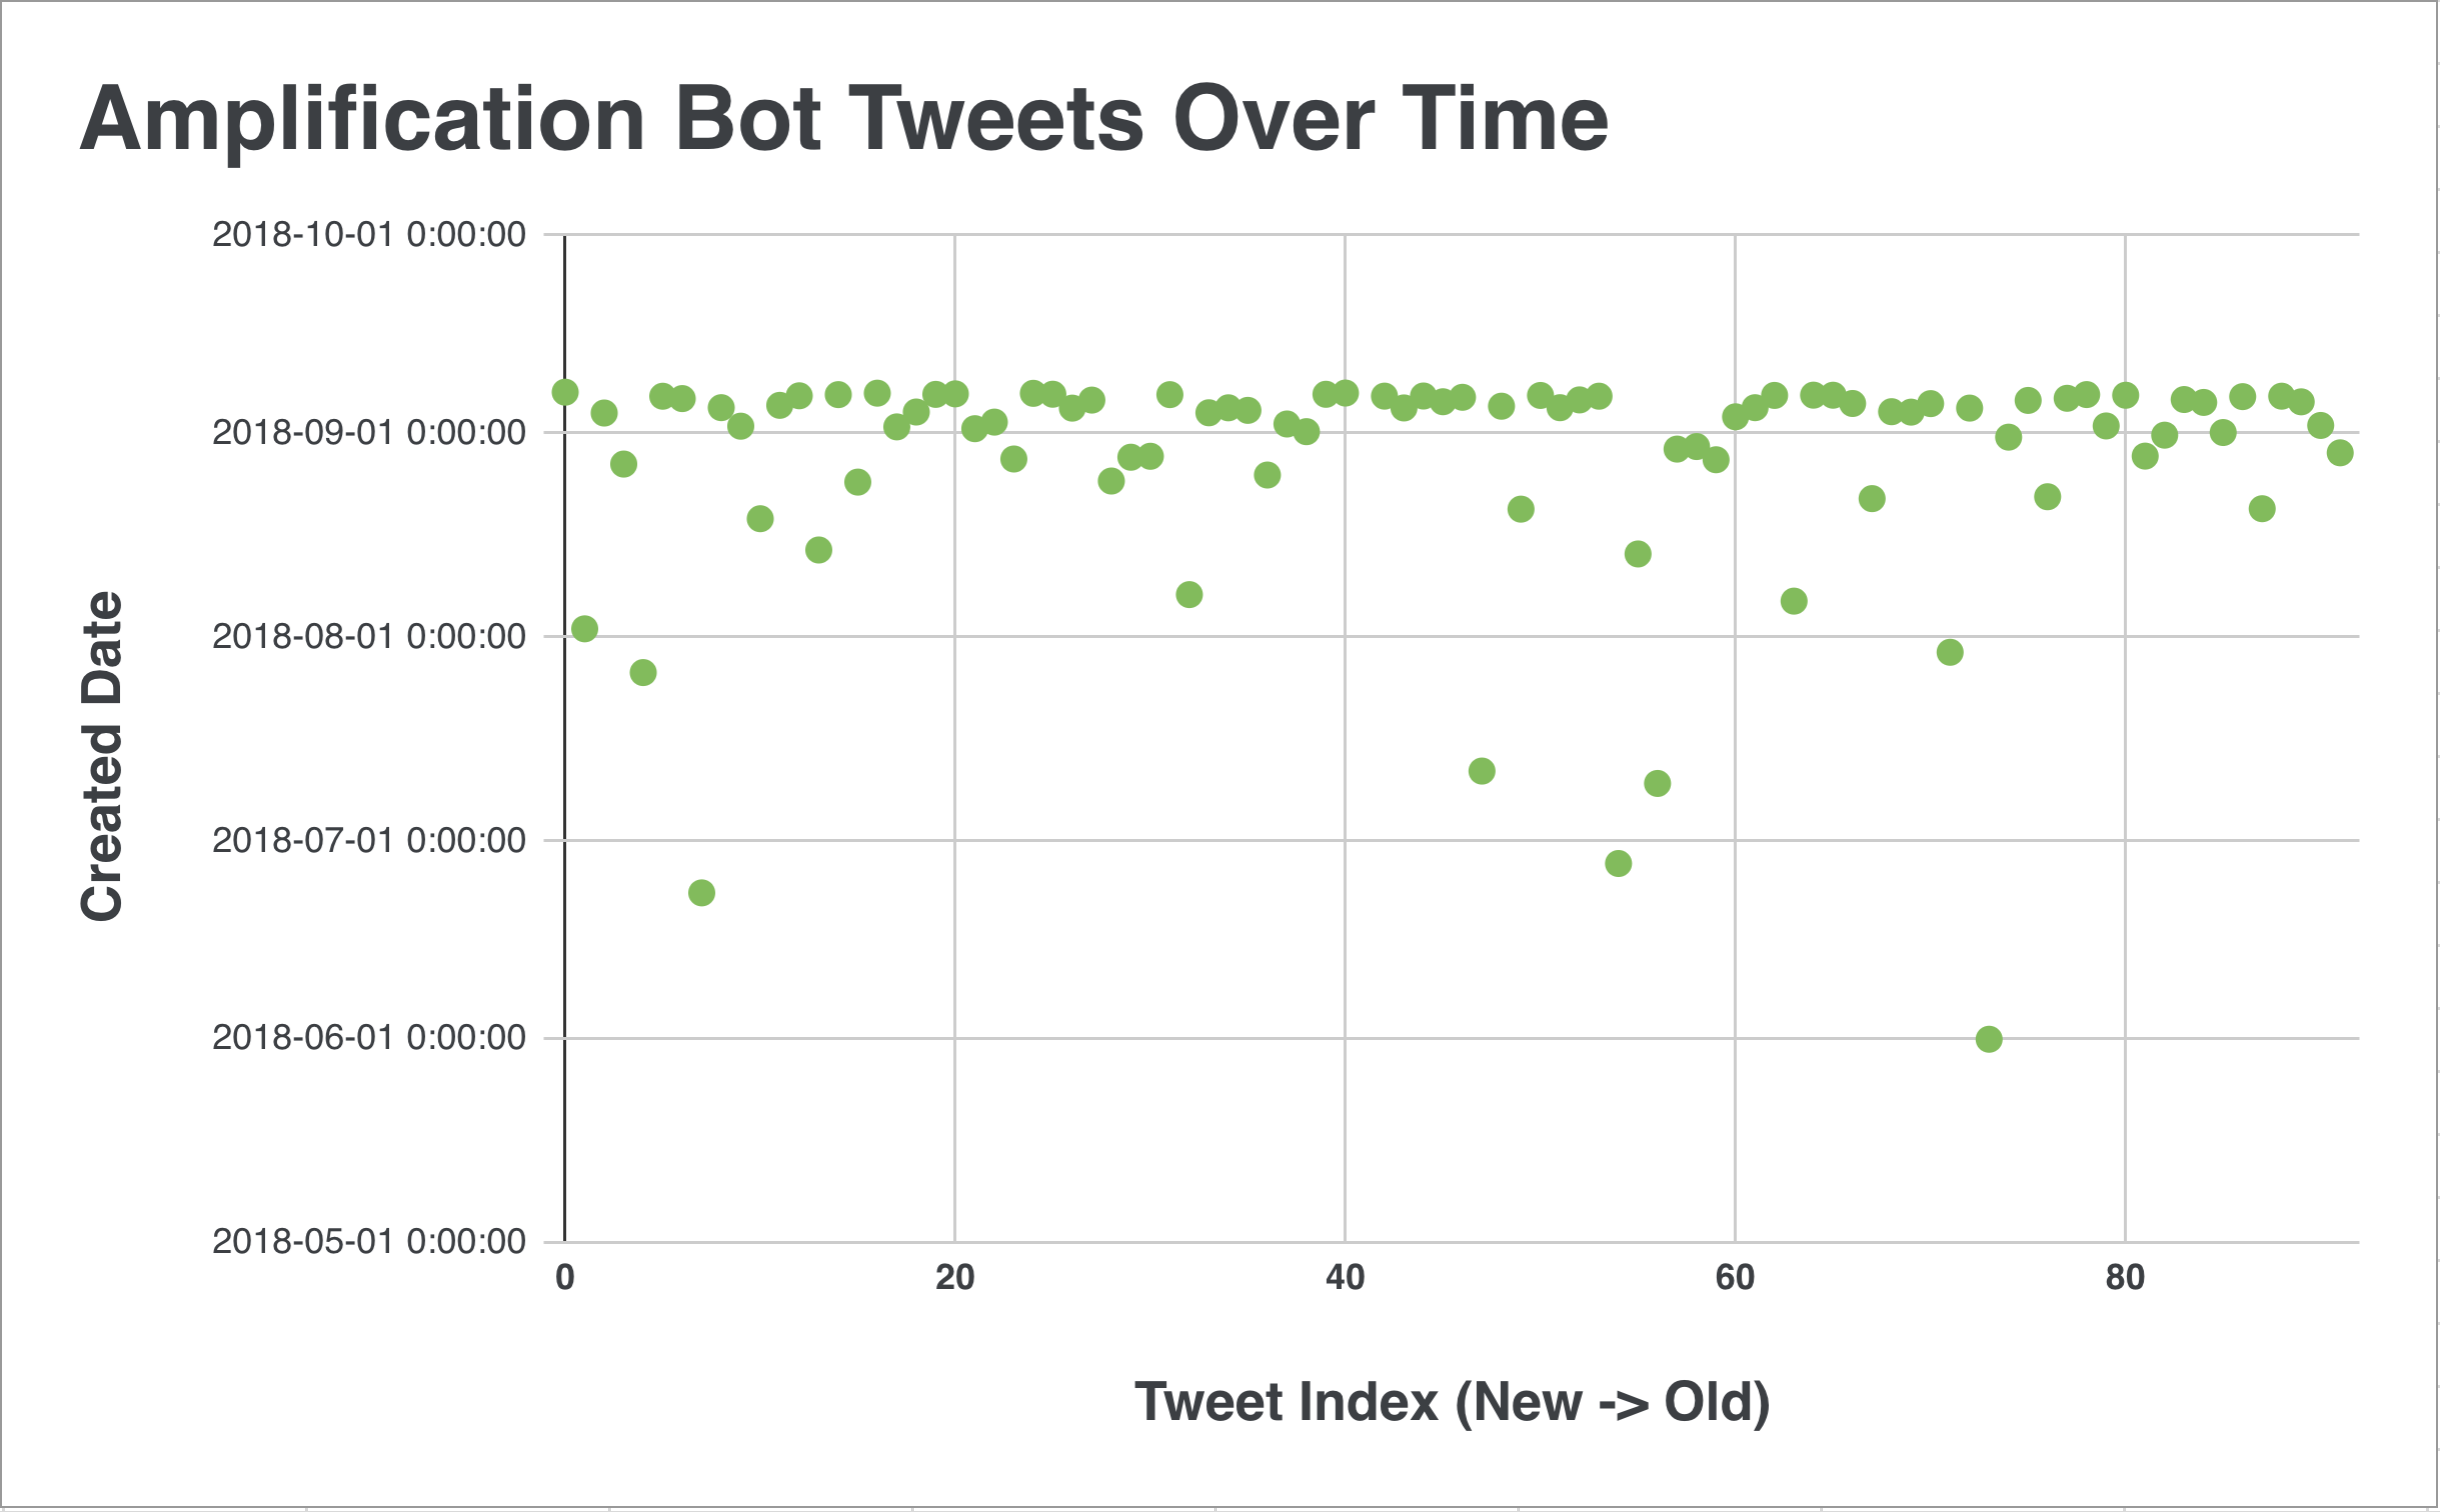 bd6accb9deb8 Anatomy of Twitter Bots  Amplification Bots